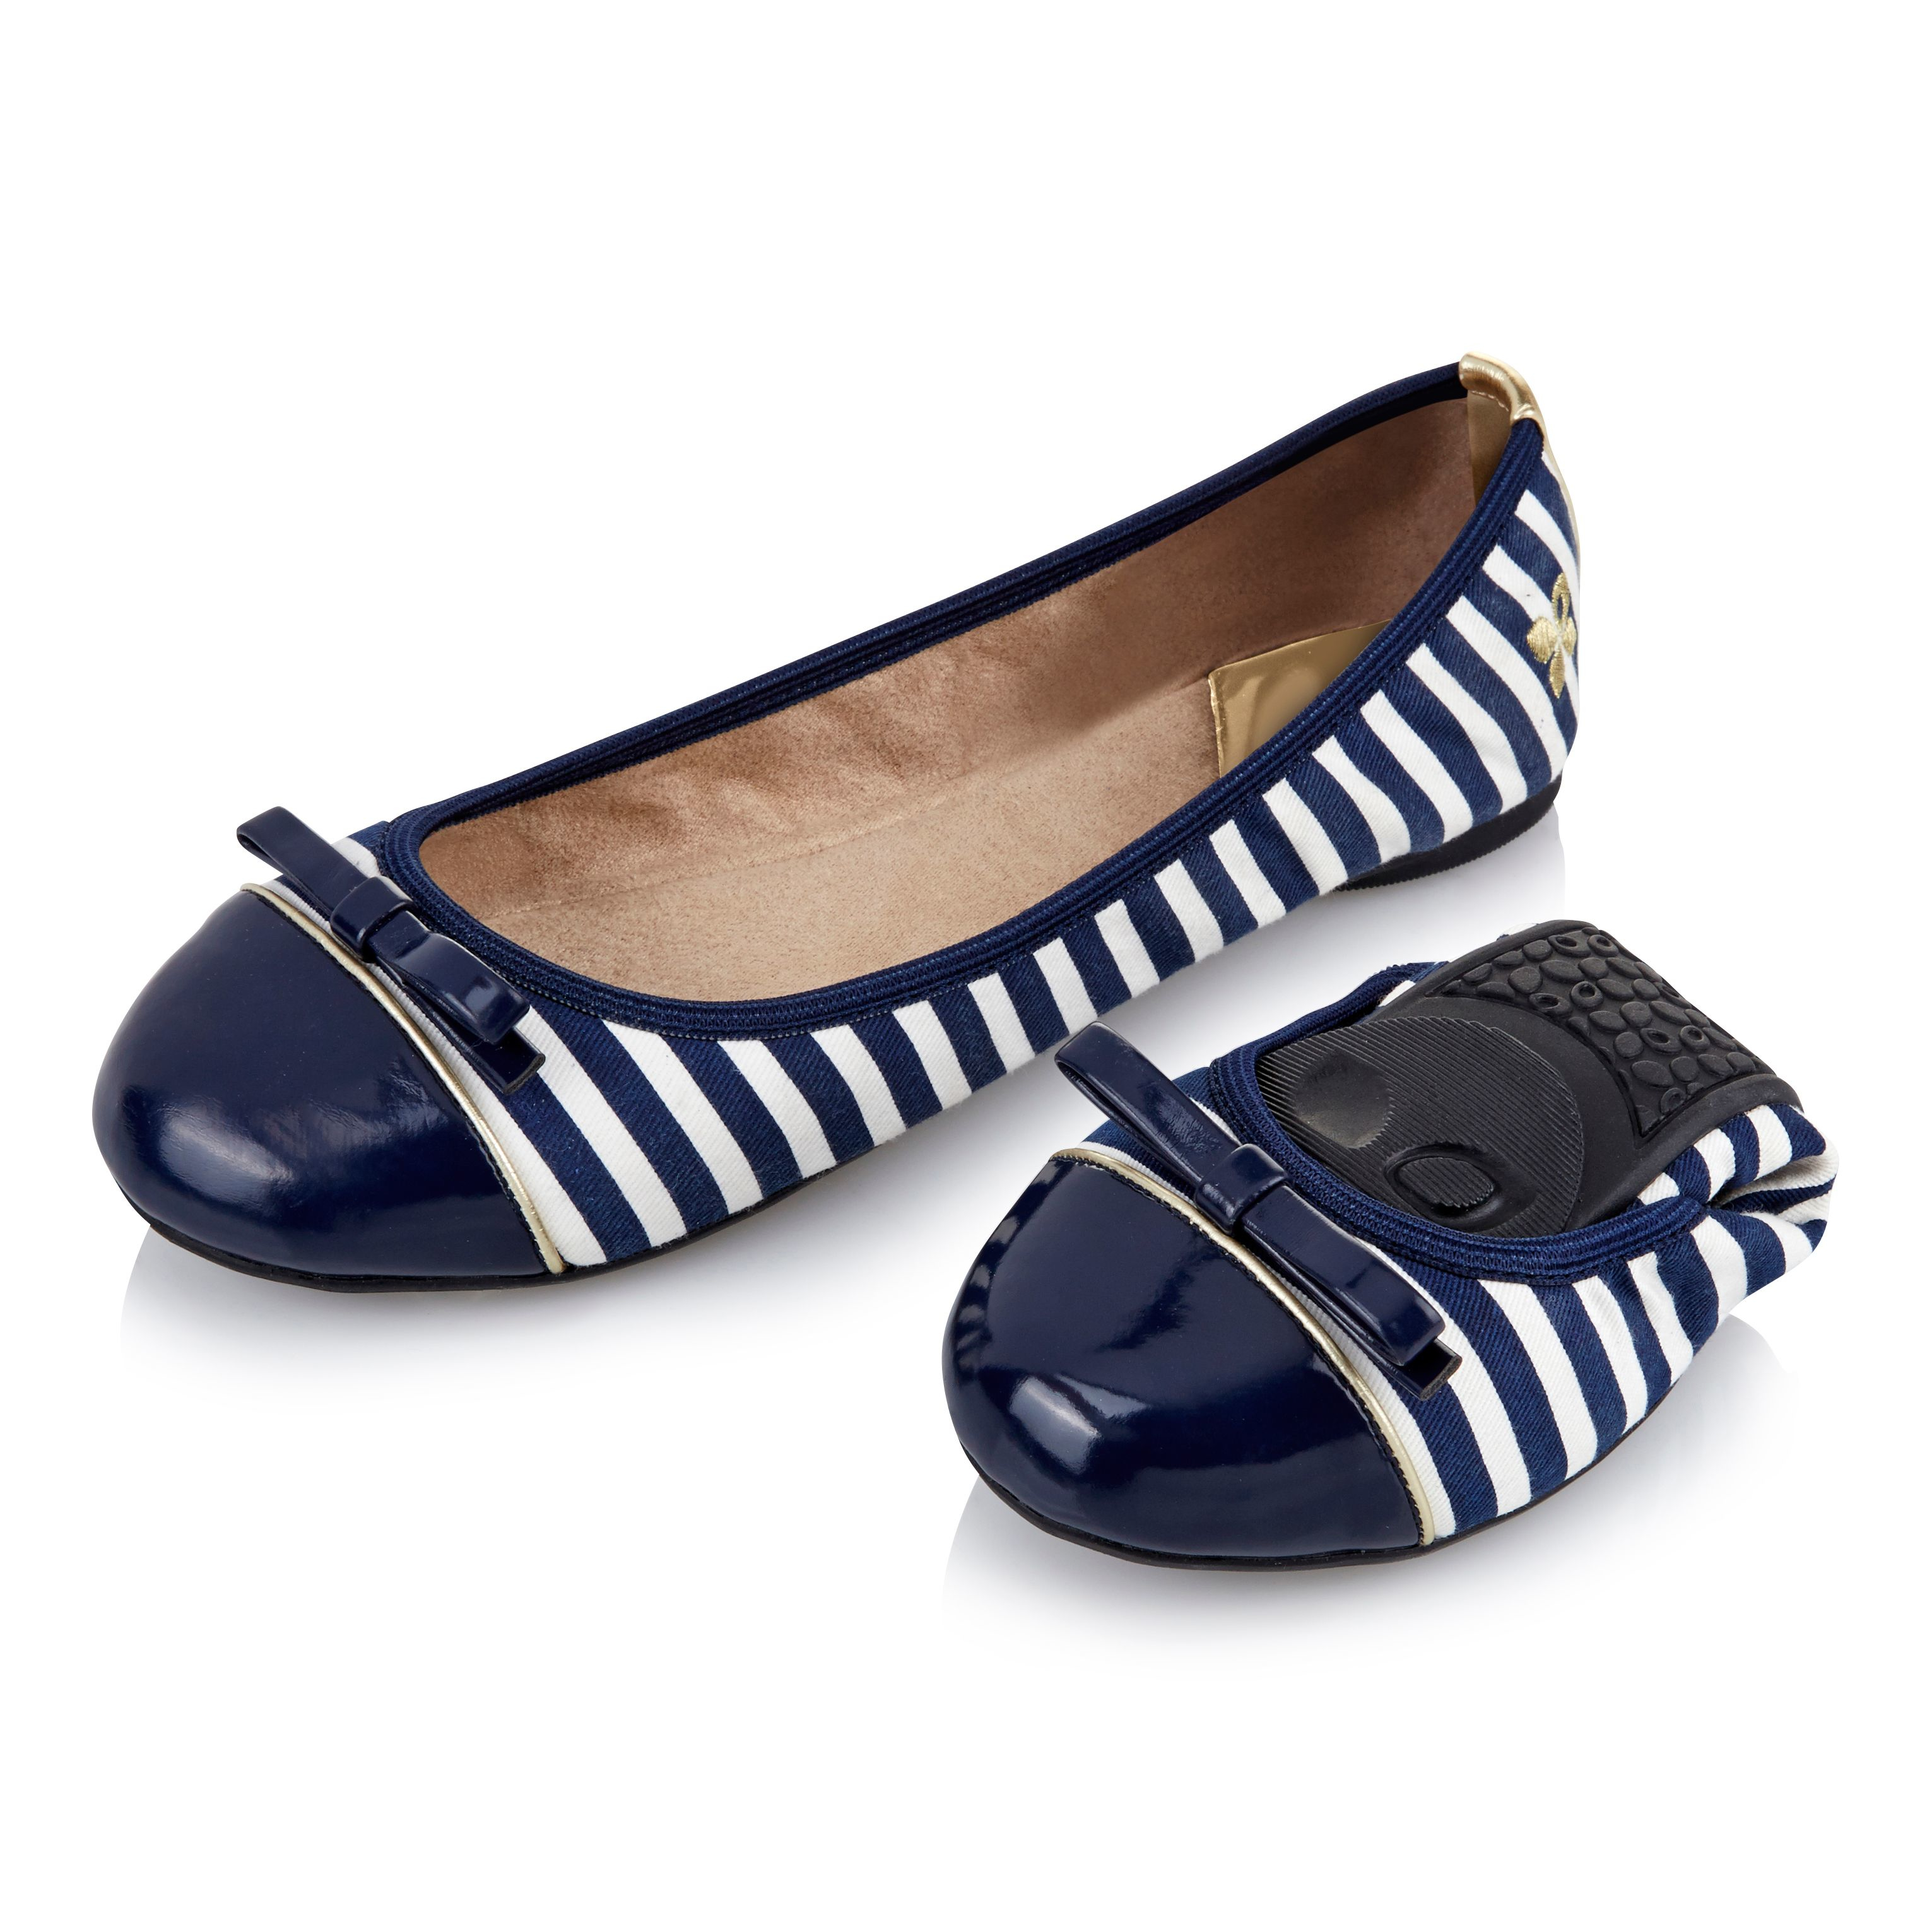 butterfly twists ballerina shoe in blue lyst. Black Bedroom Furniture Sets. Home Design Ideas